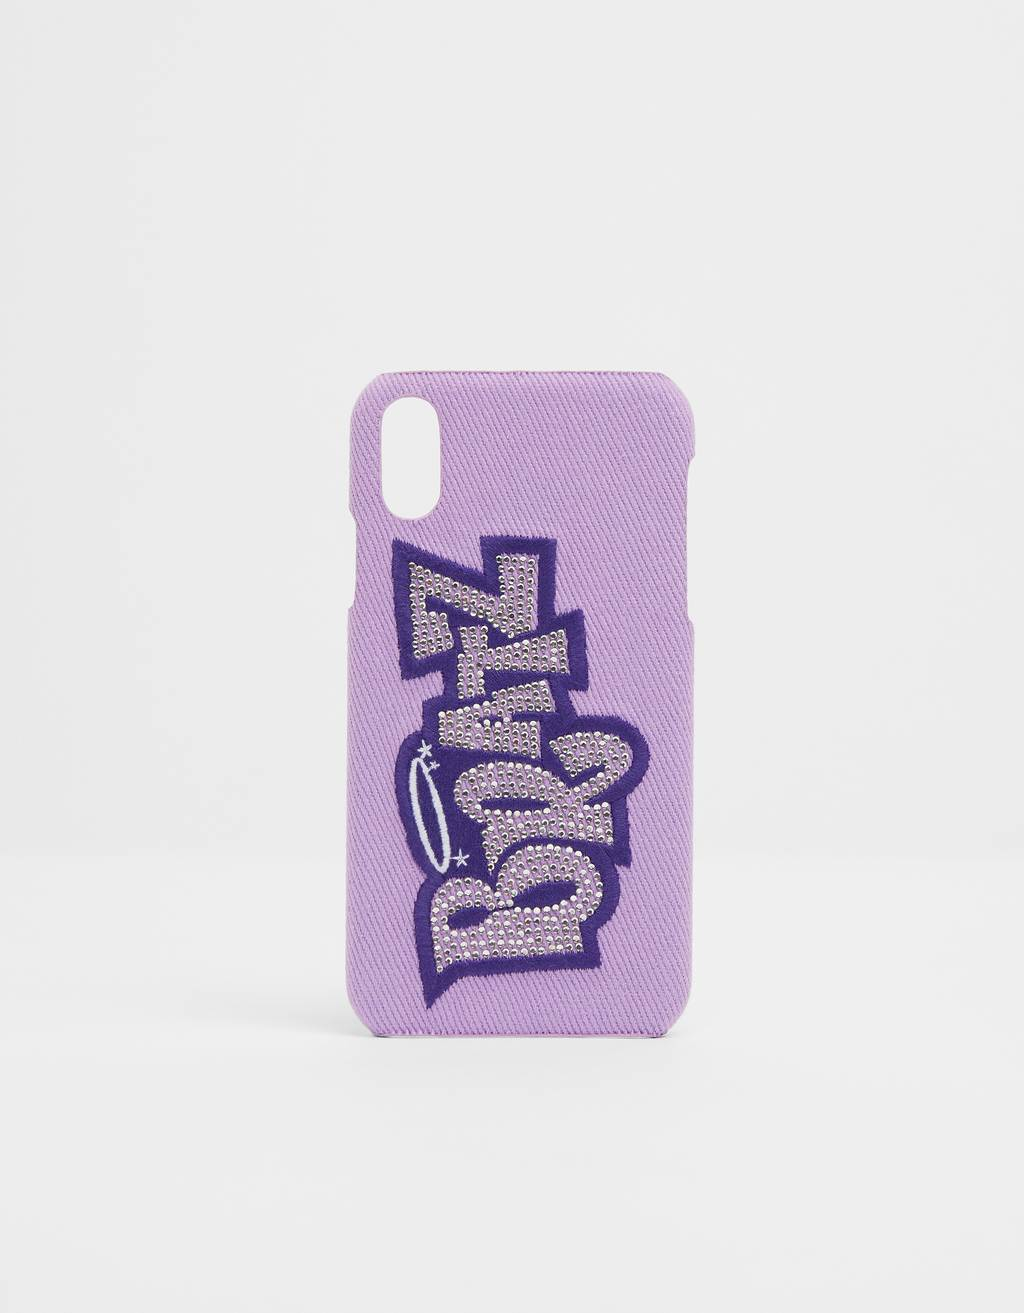 Bratz iPhone XR case